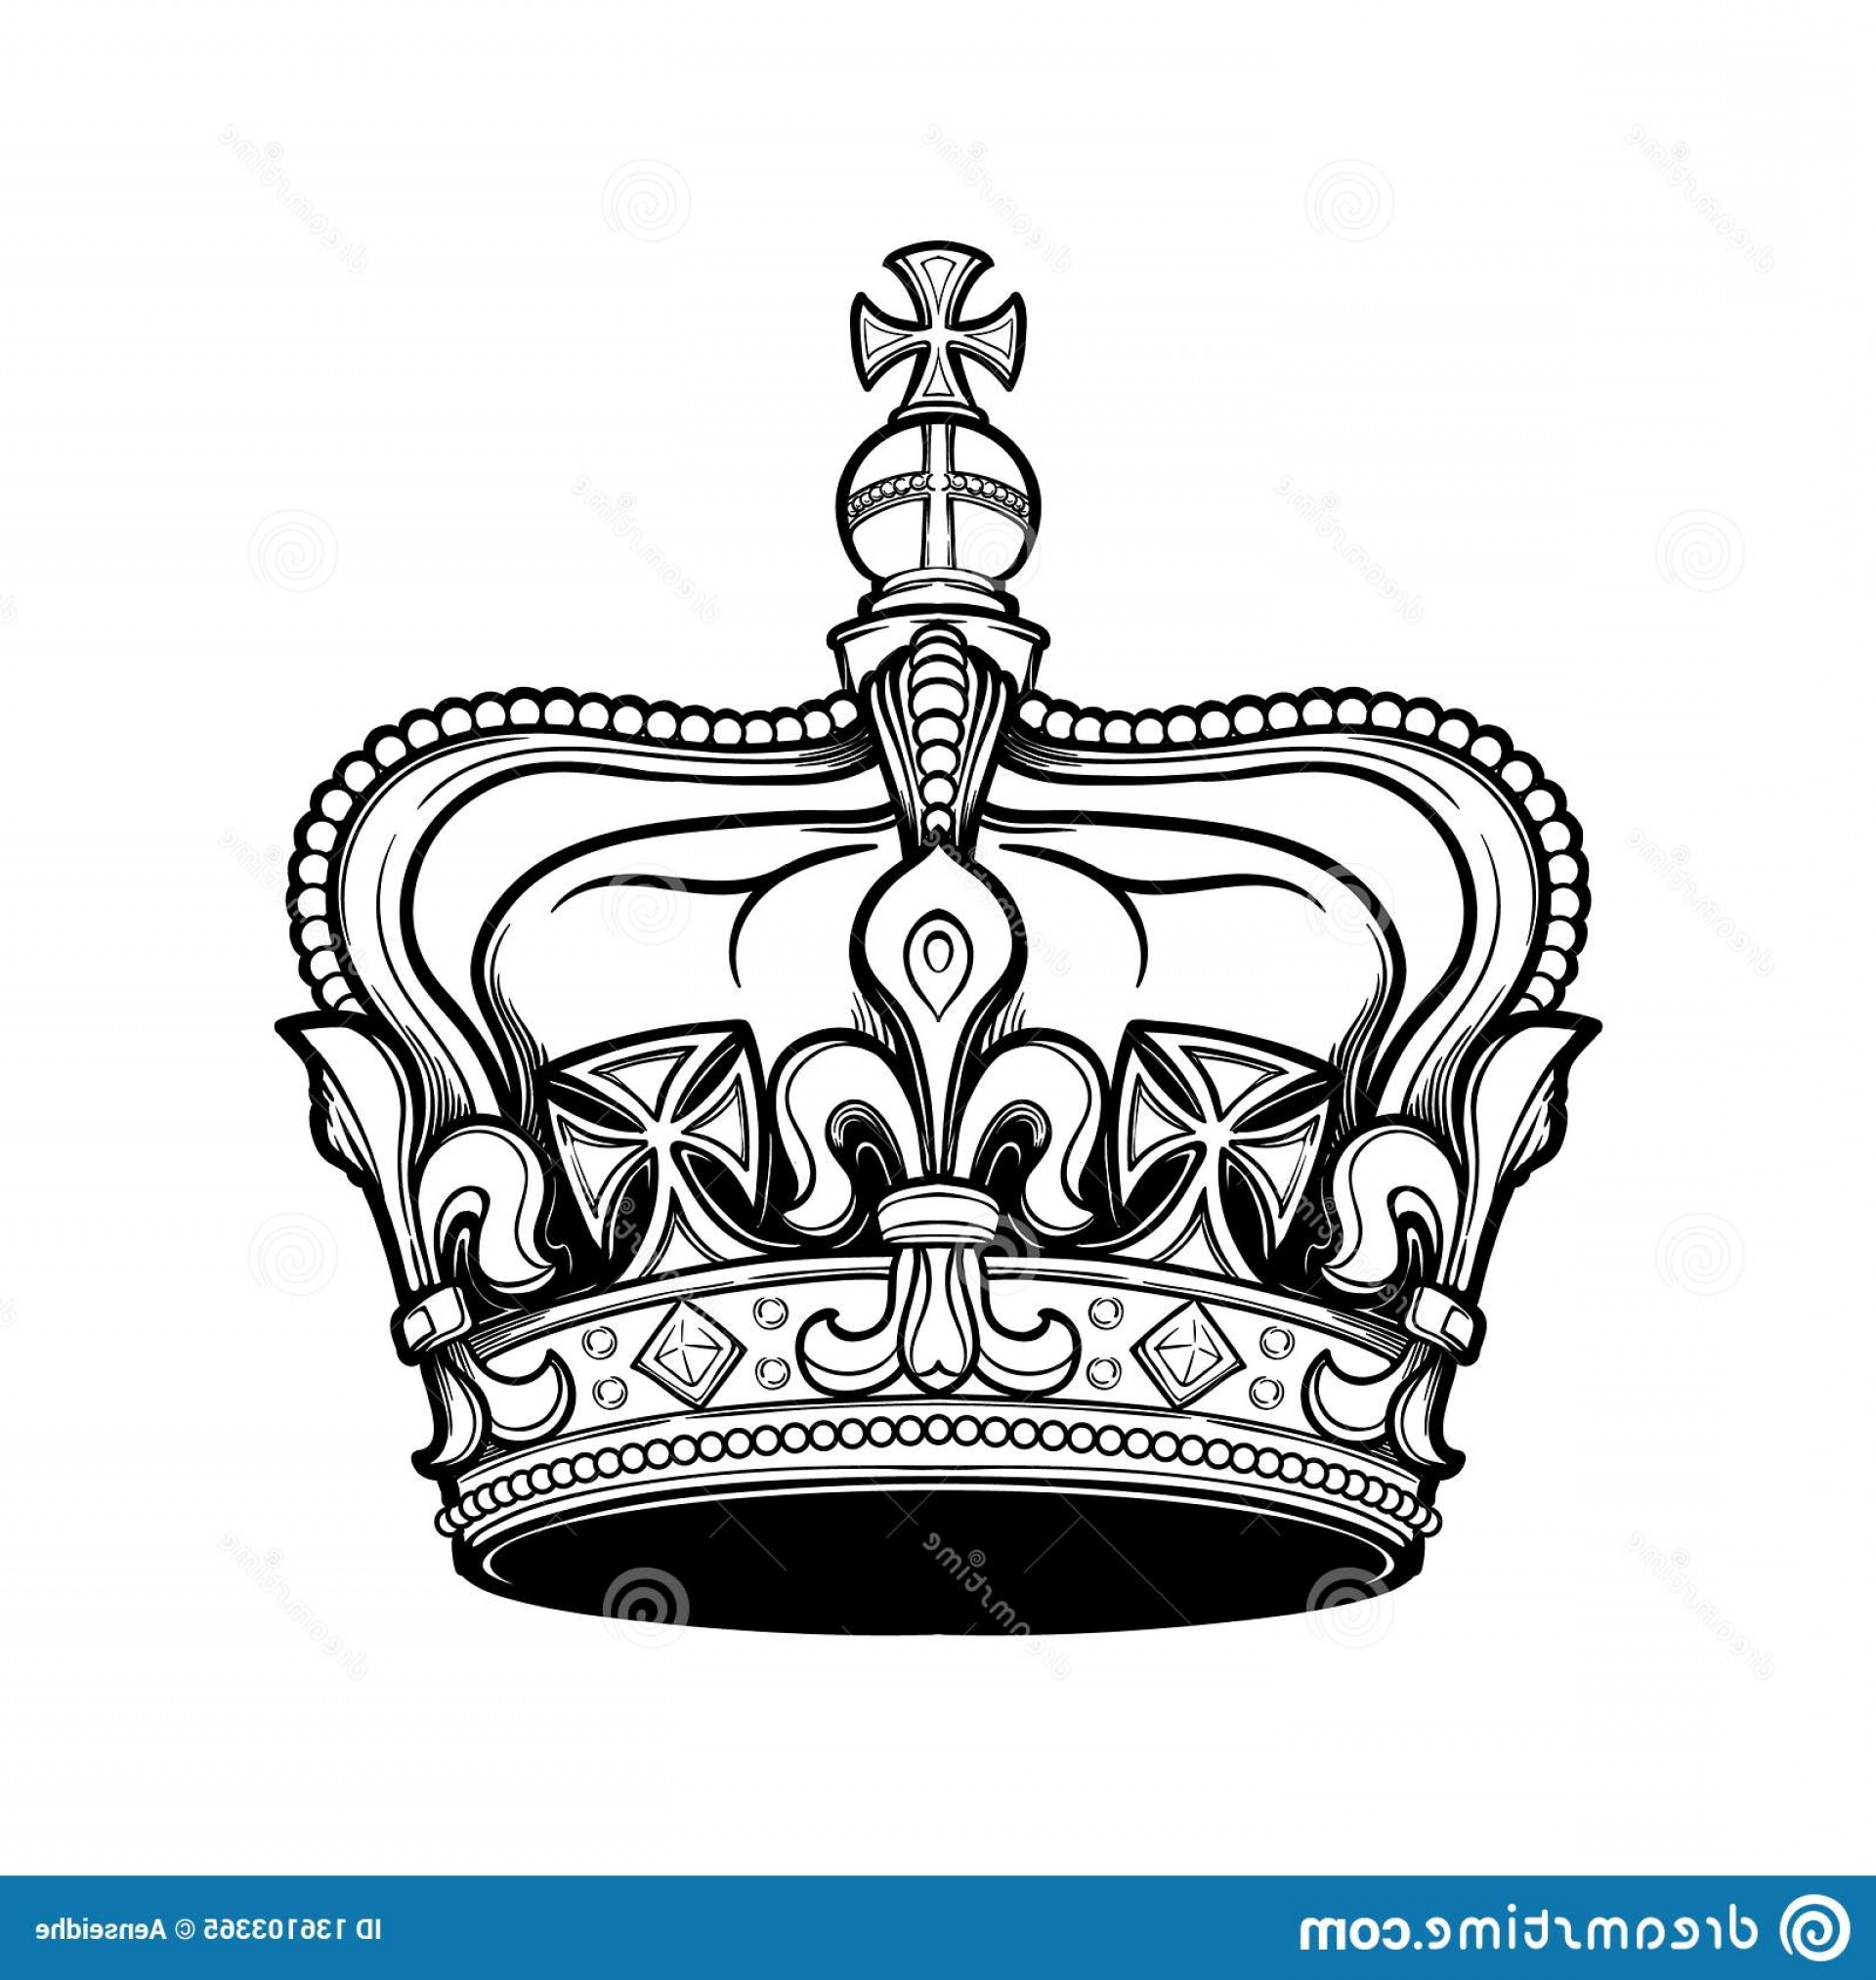 Detailed Tattoo Vector Images: Filigree High Detailed British Imperial Crown Element Design Logo Emblem Tattoo Vector Illustration Isolated Filigree High Image